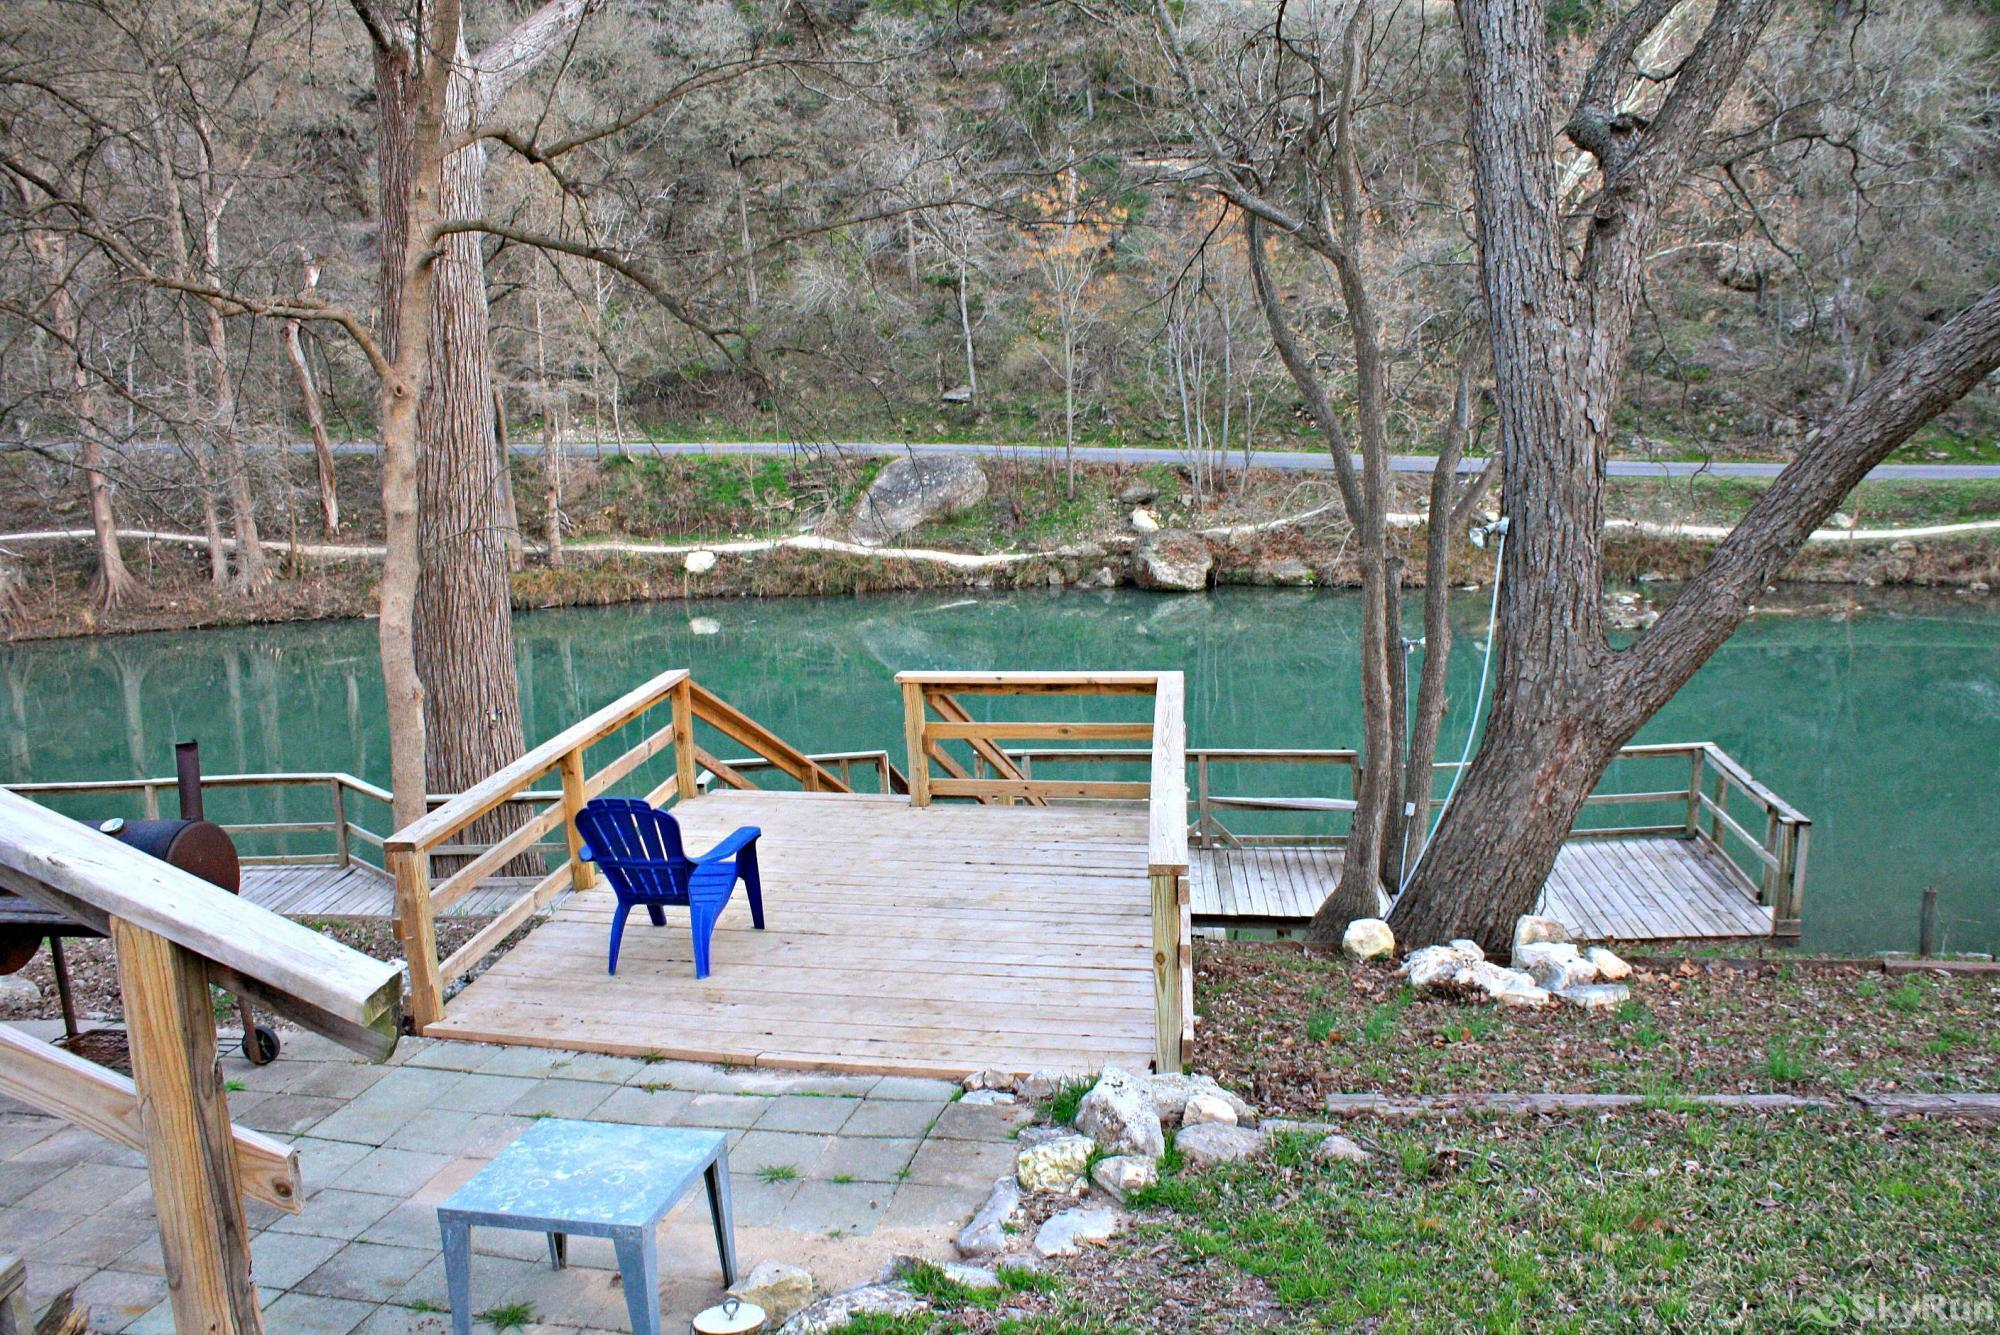 RIO VISTA ON THE GUADALUPE Enjoy the Sights and Sounds of the Guadalupe